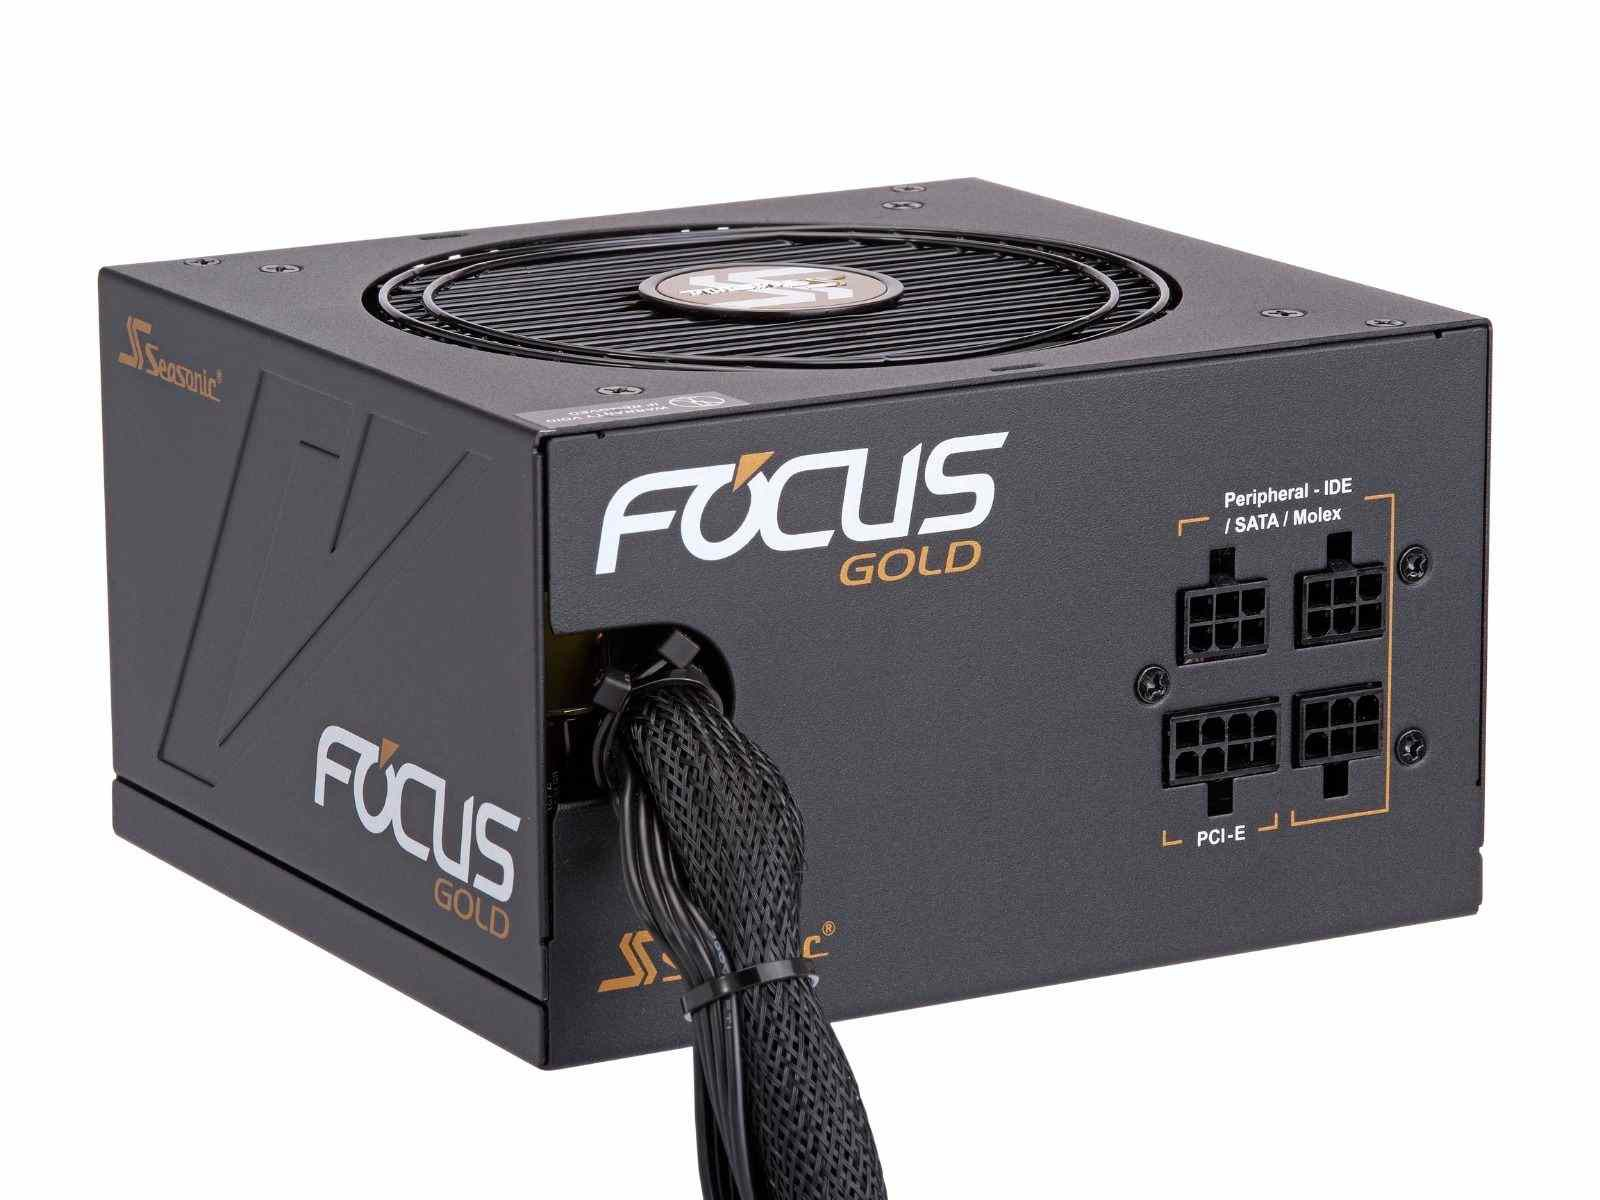 Блок питания 750W SeaSonic Focus Gold (SSR-750FM) (120мм, 24+8pin, 4x6/8pin, 3xMolex, 8xSATA, полумодульный, 80 PLUS Gold)